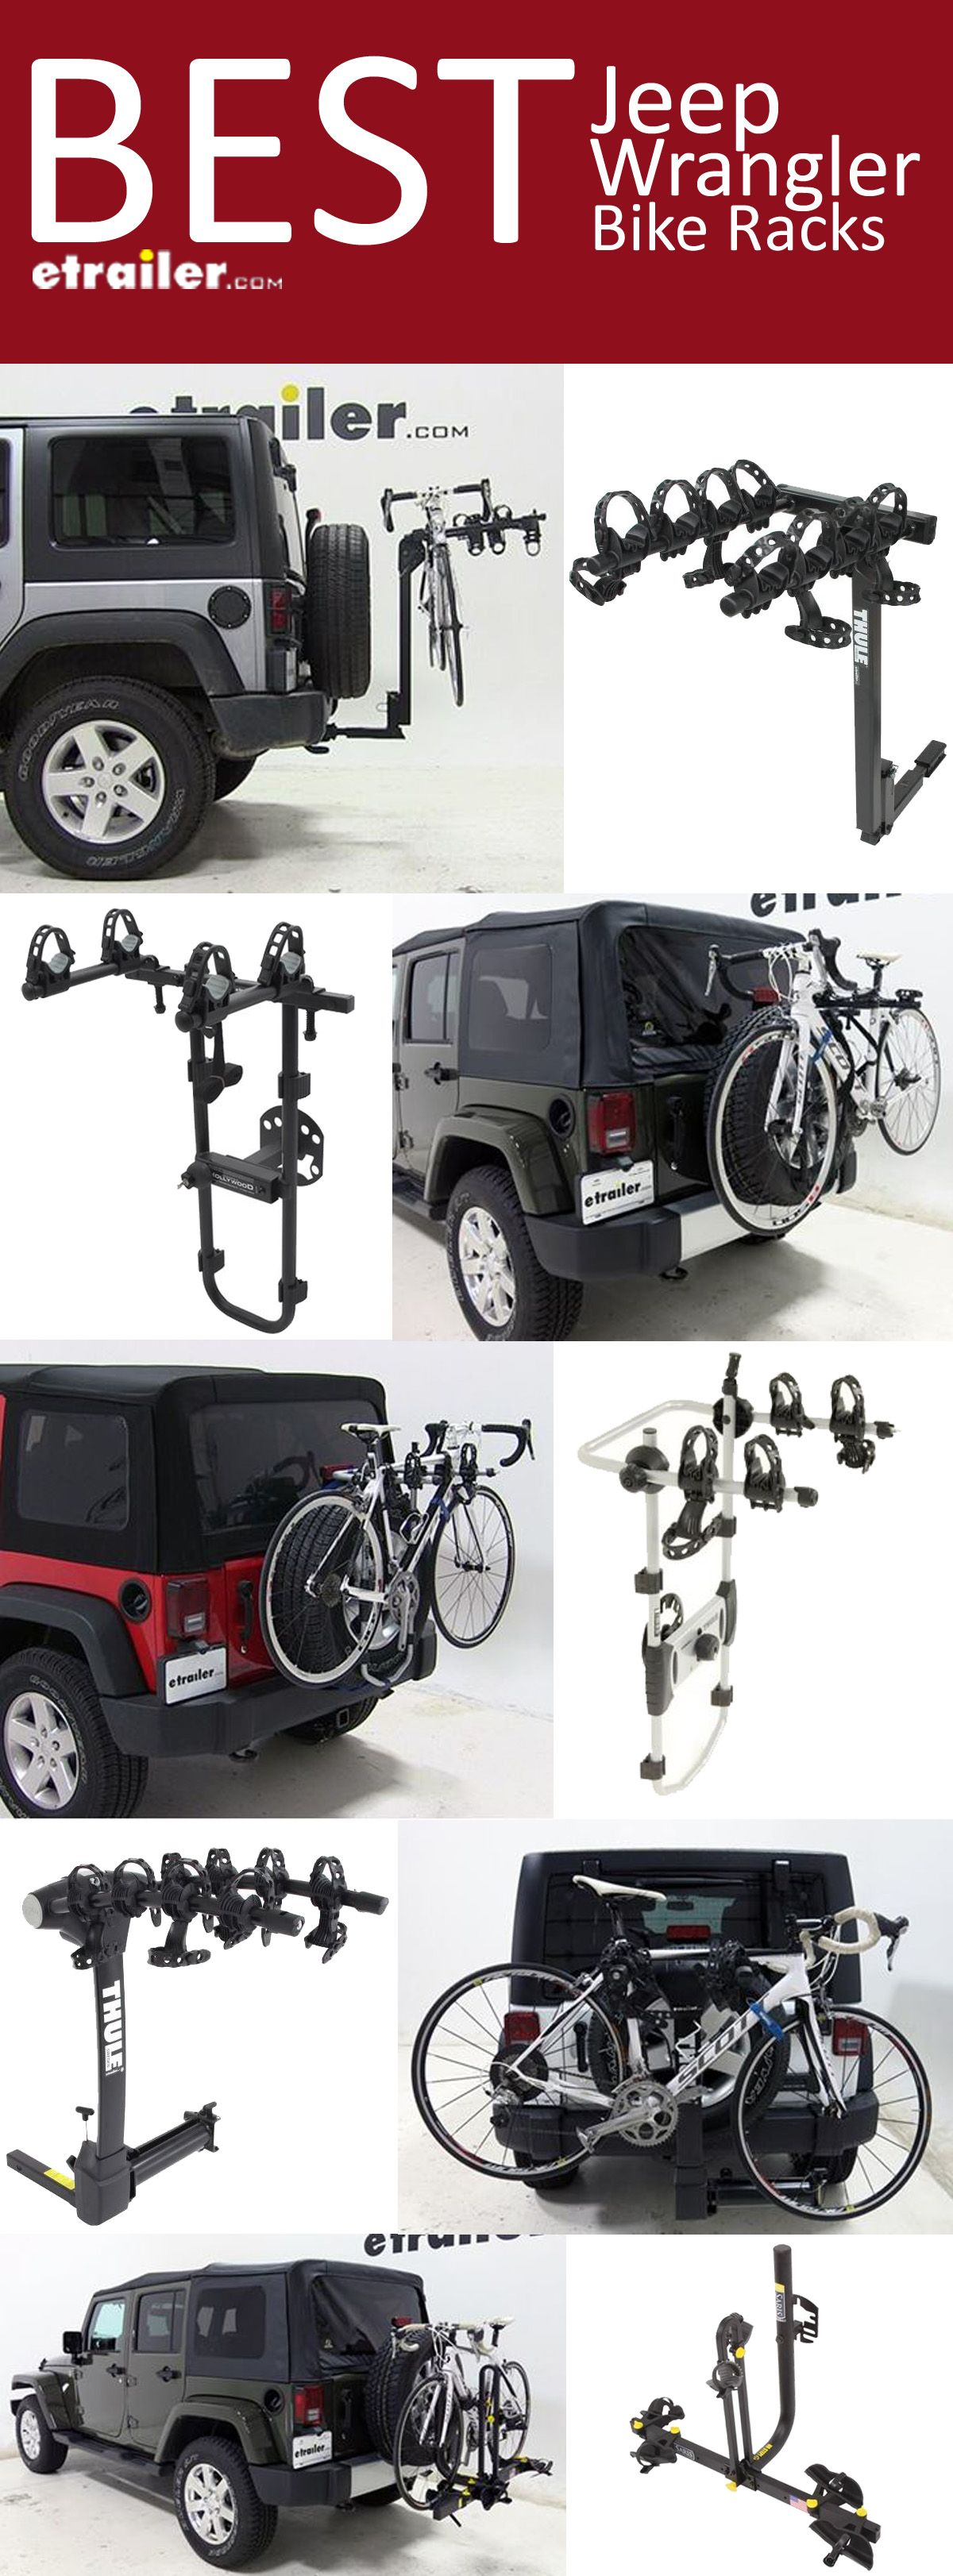 Here Is The Complete List Of The Best Jeep Wrangler Bike Racks